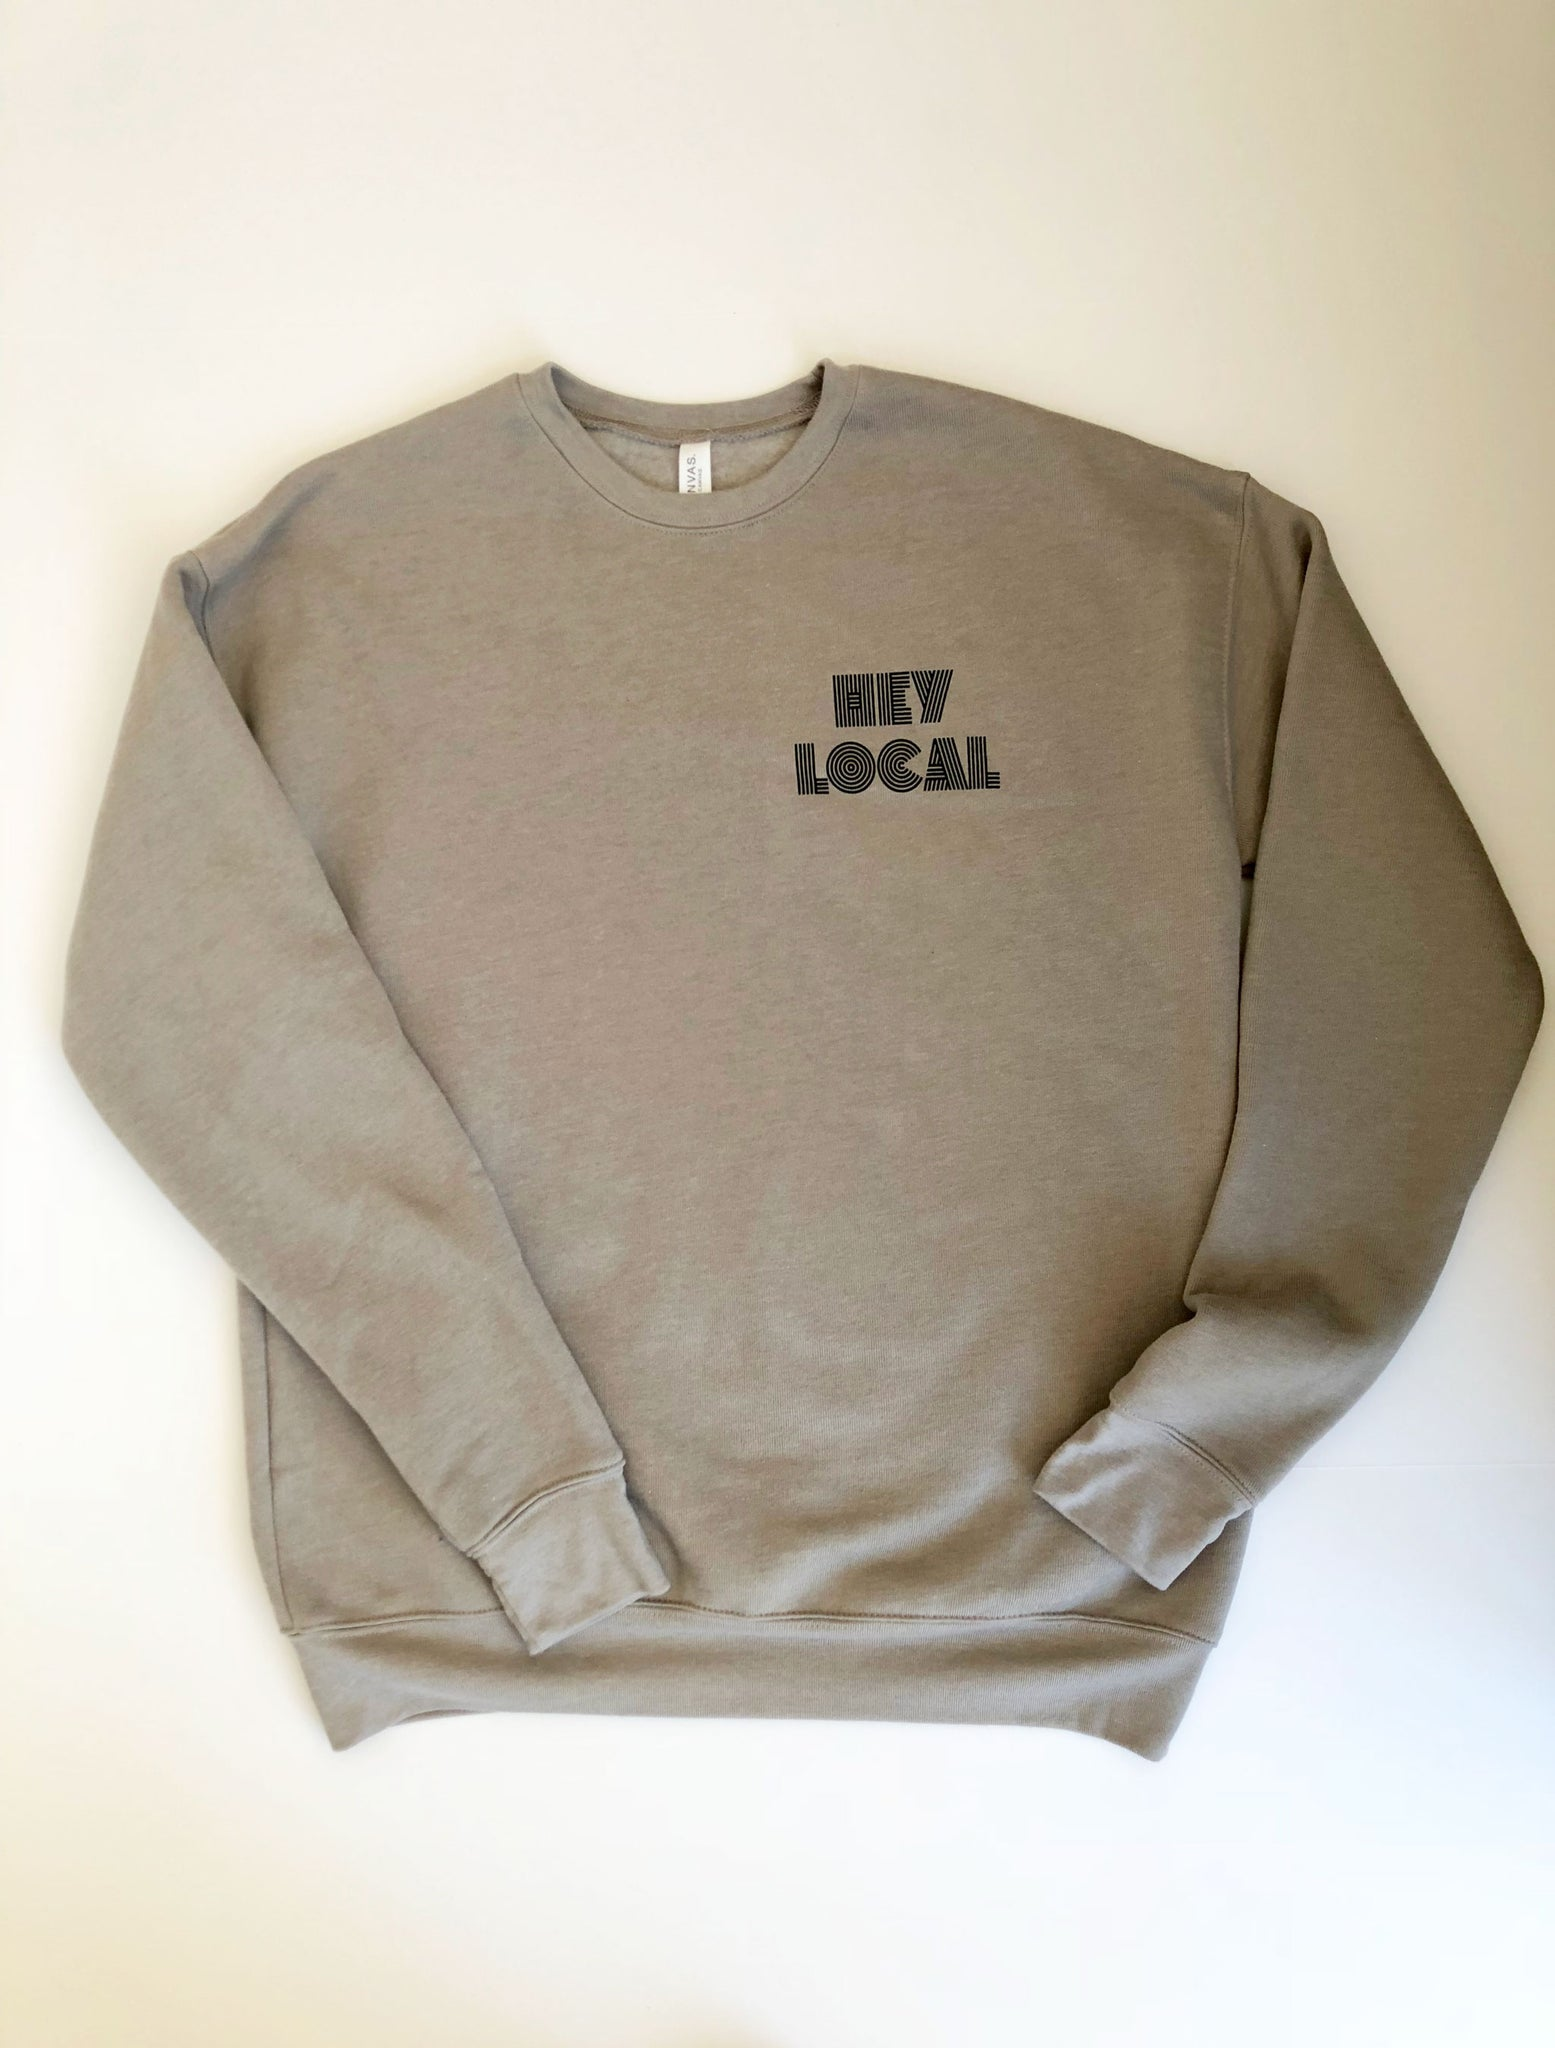 Hey Local Crewneck Logo Sweatshirt